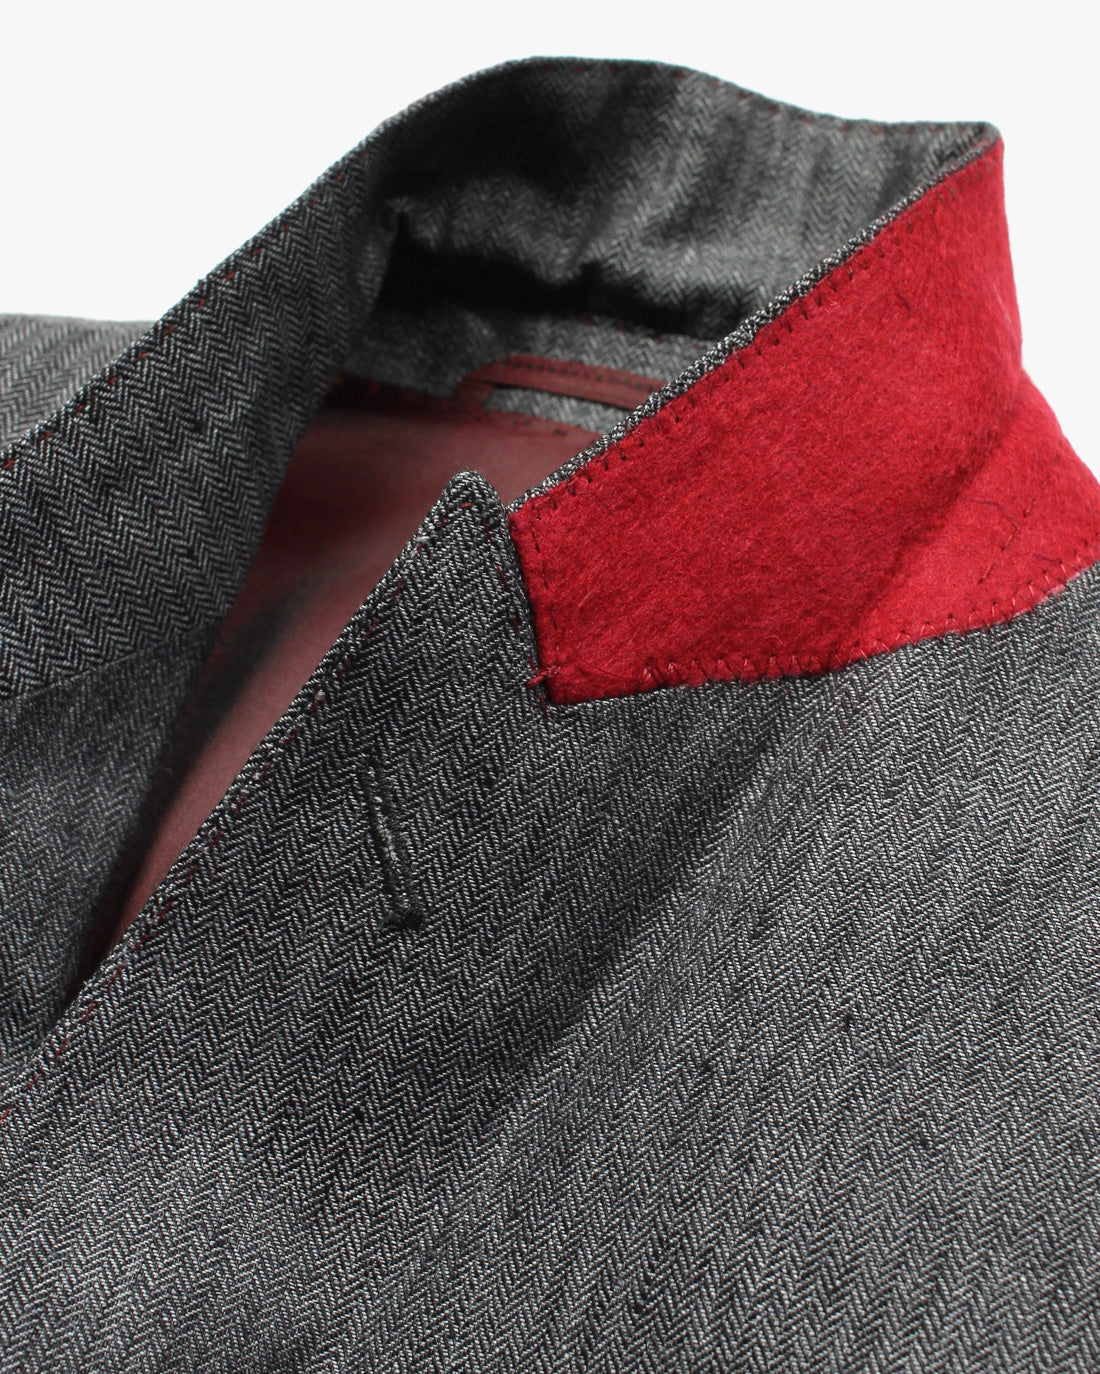 Charcoal Herringbone 2 Piece Suit - Holland Esquire